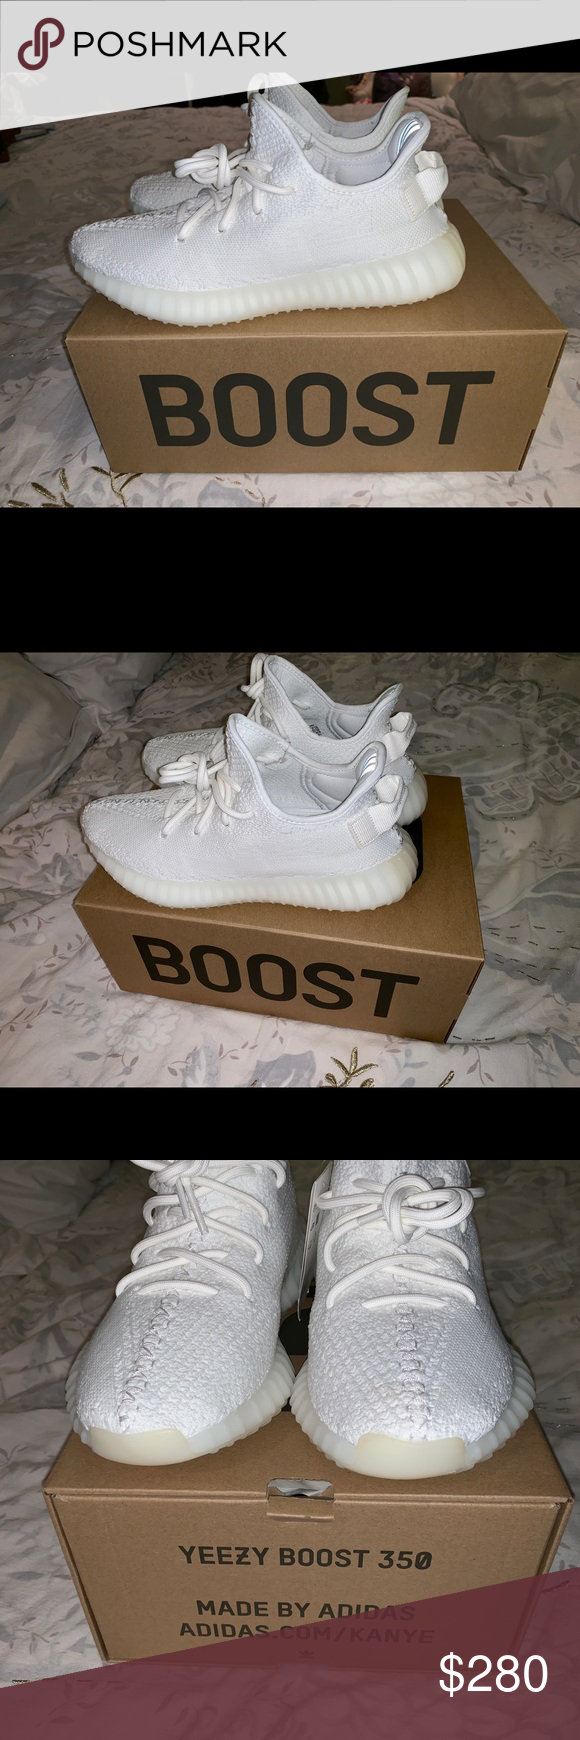 8280ca58f Yeezy Boost 350 V2 Triple White Yeezy 350 V2 Triple White Size 7 men s  Brand new with tags never worn before I wear women s size 8 and these are  too big ...